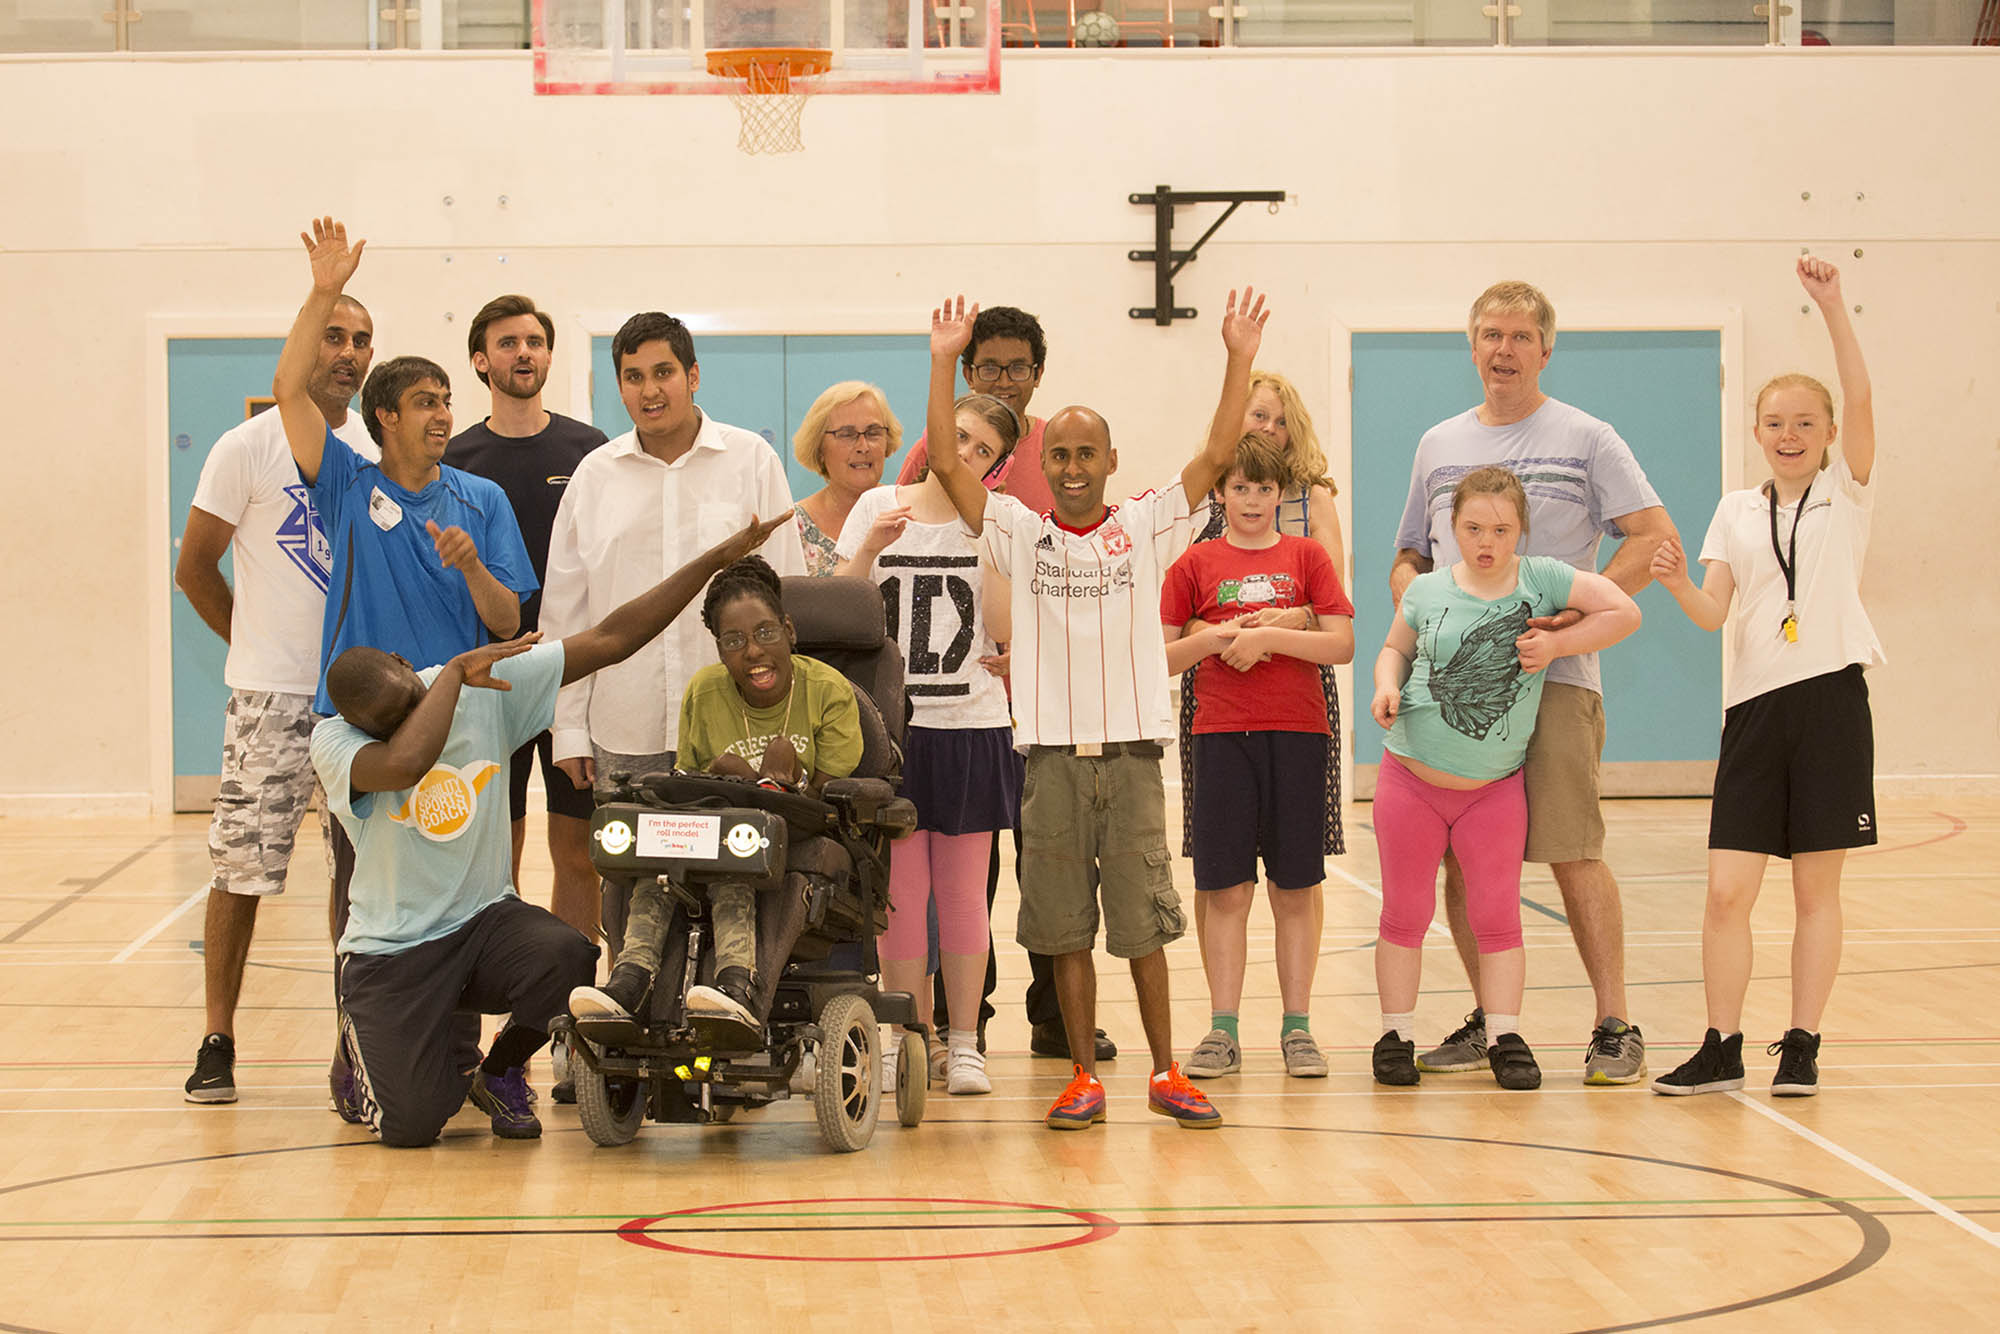 group of people all ages disabled and non-disabled in sports hall group photo